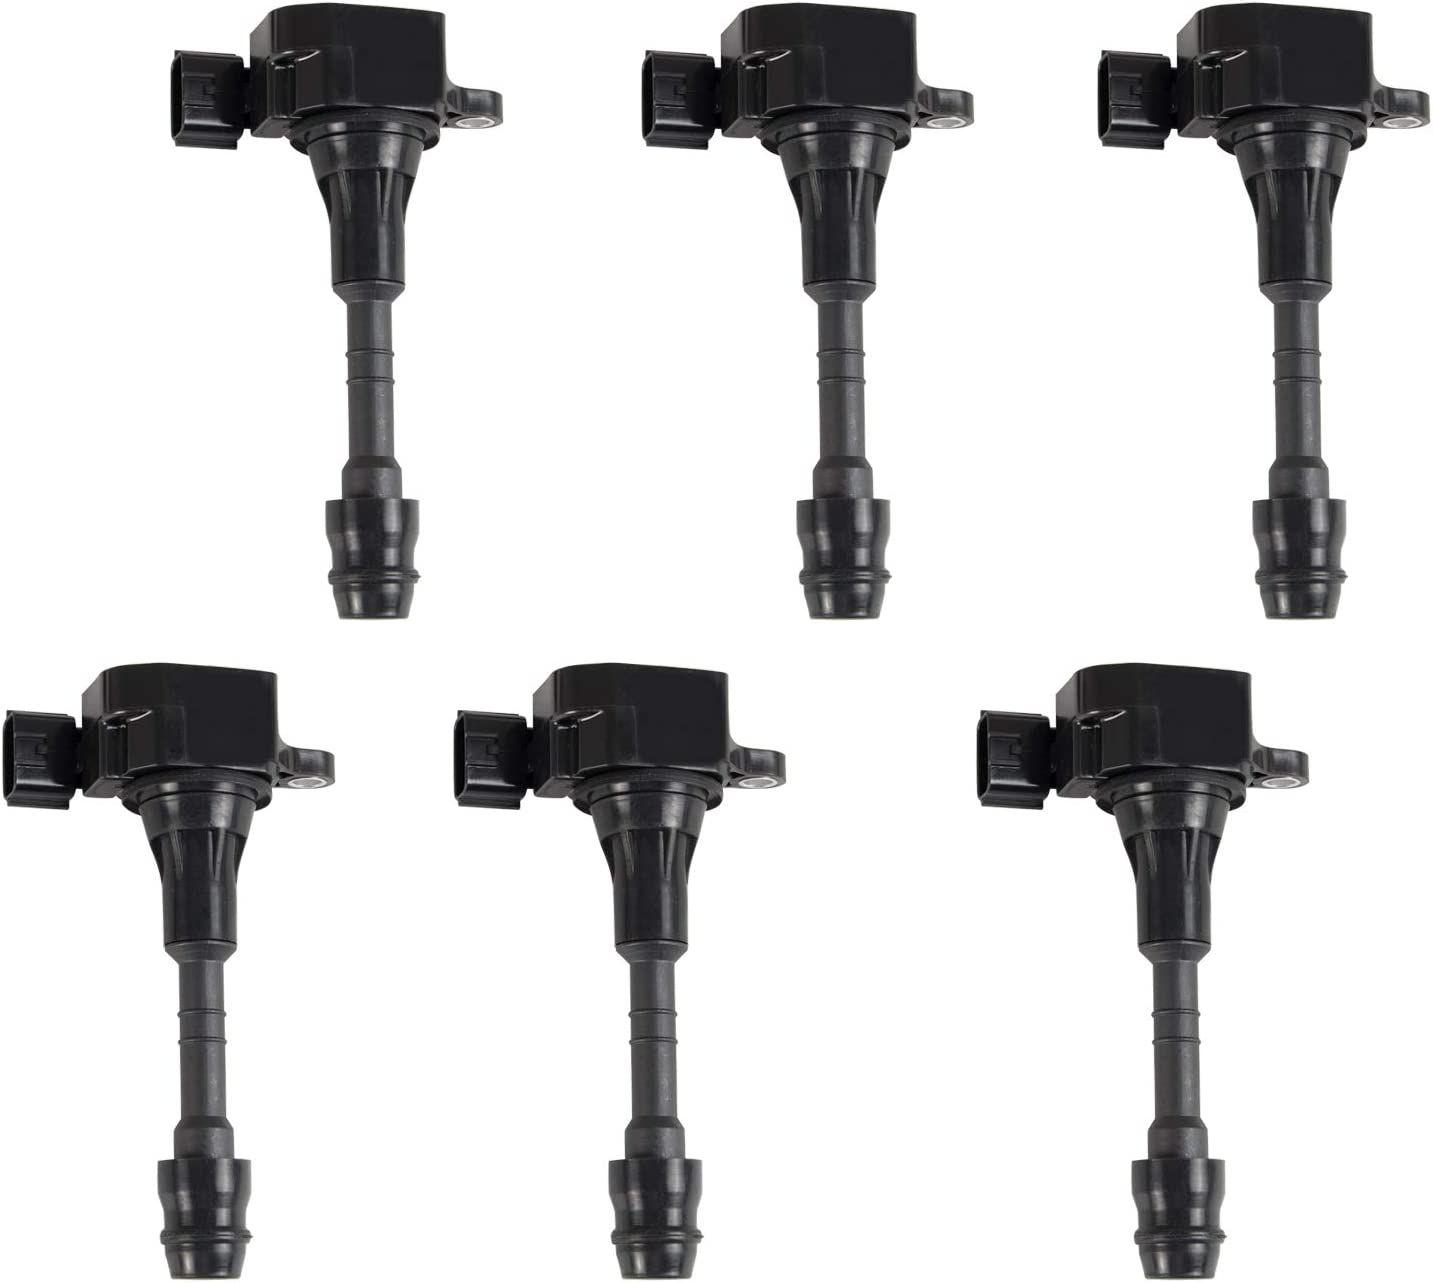 Tepeng 6 excellence pcs Ignition Coils Cheap mail order sales Pack with Nissa 2003-2006 Compatible